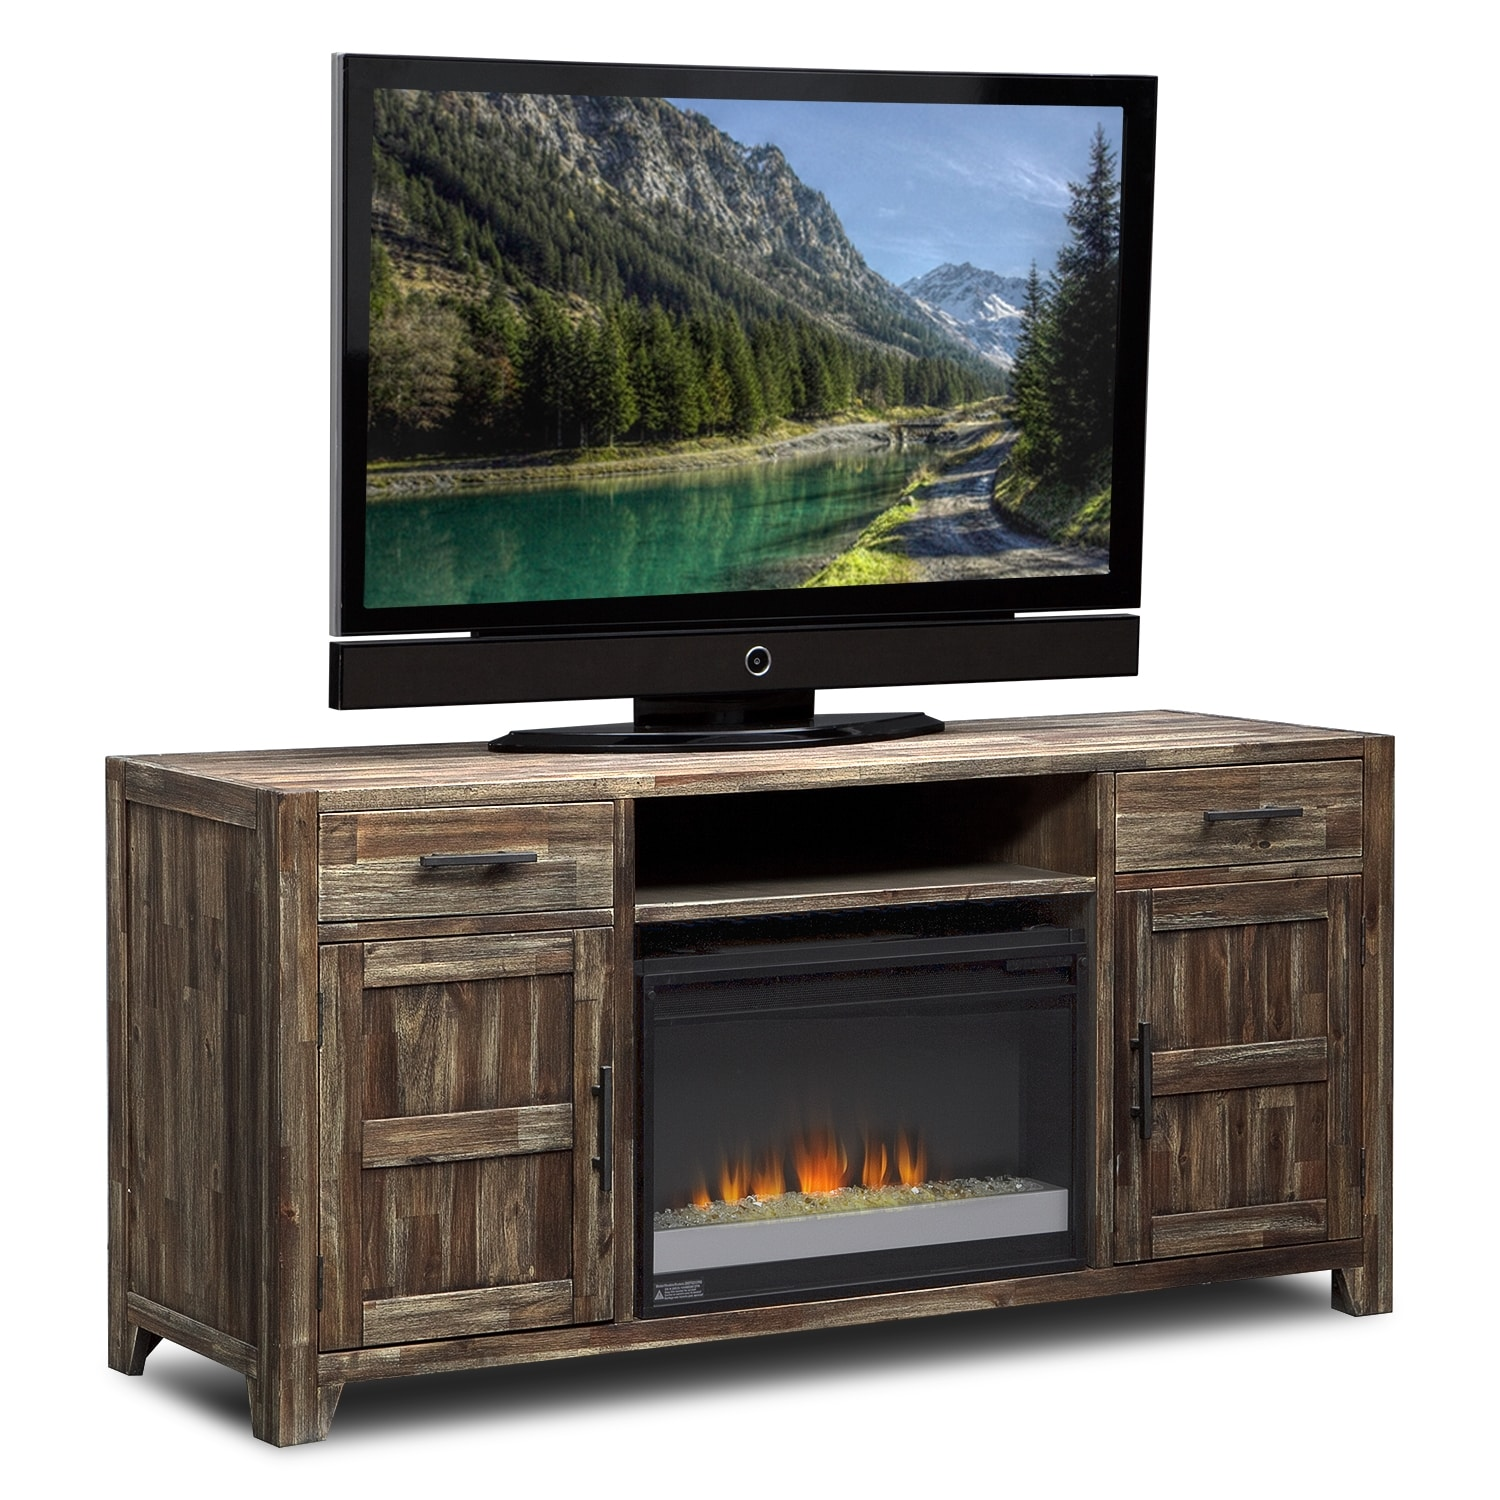 Entertainment Furniture - Brentwood Fireplace TV Stand with Contemporary Insert - Medium Brown